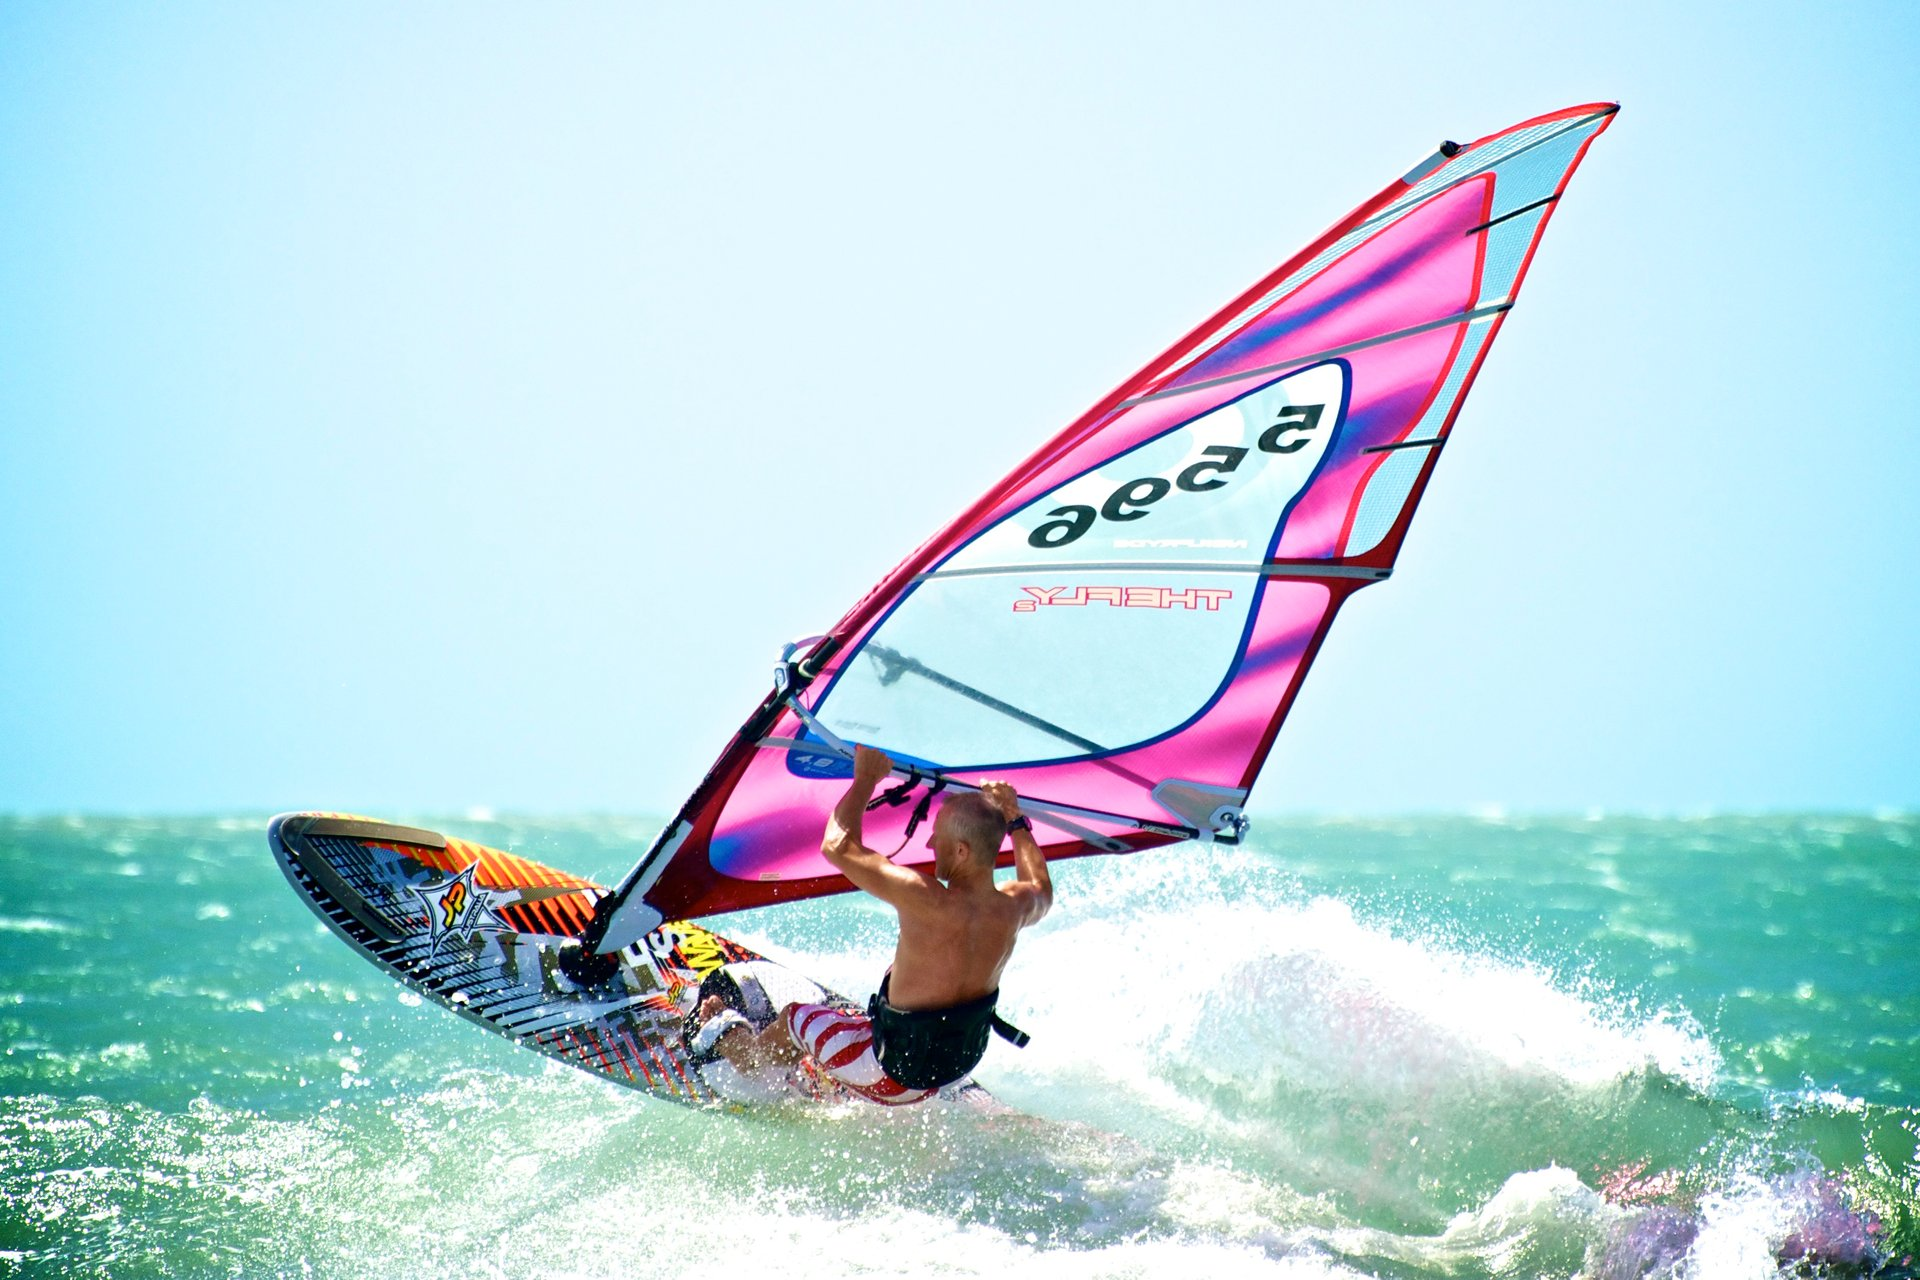 Kitesurfing and Windsurfing in Brazil 2020 - Best Time